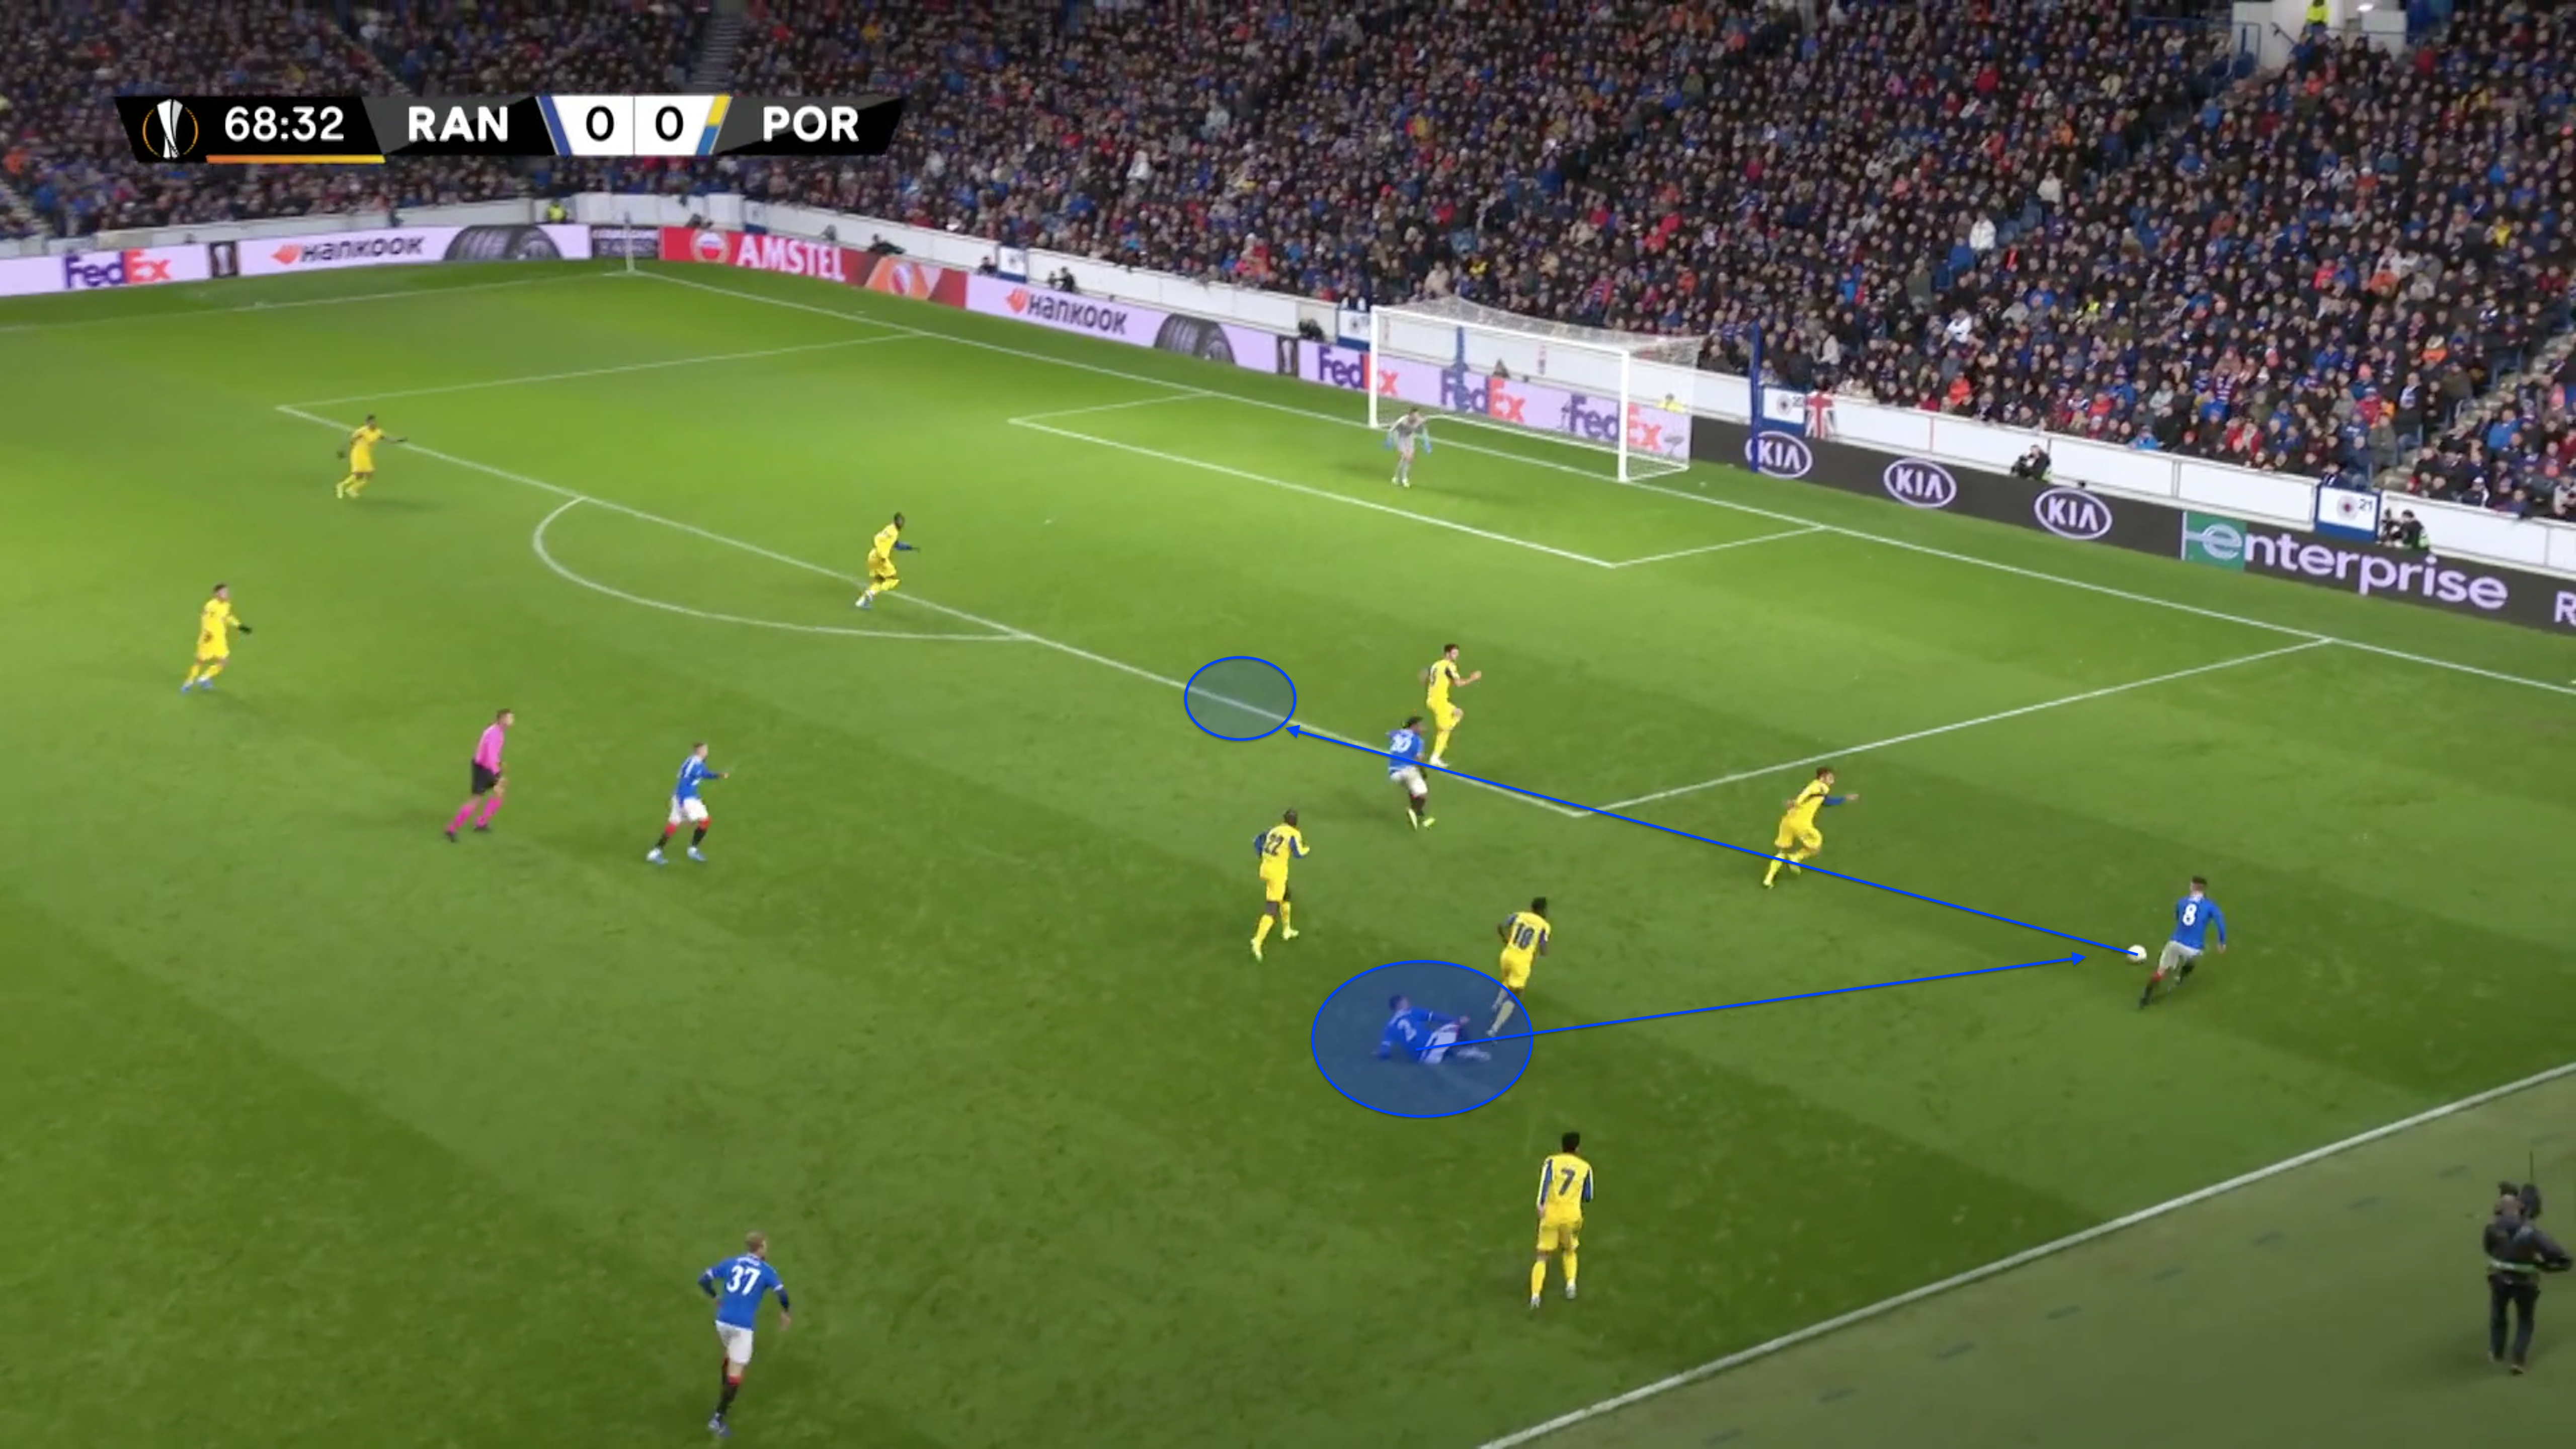 UEFA Europa League 2019/20: Rangers vs FC Porto – tactical analysis tactics